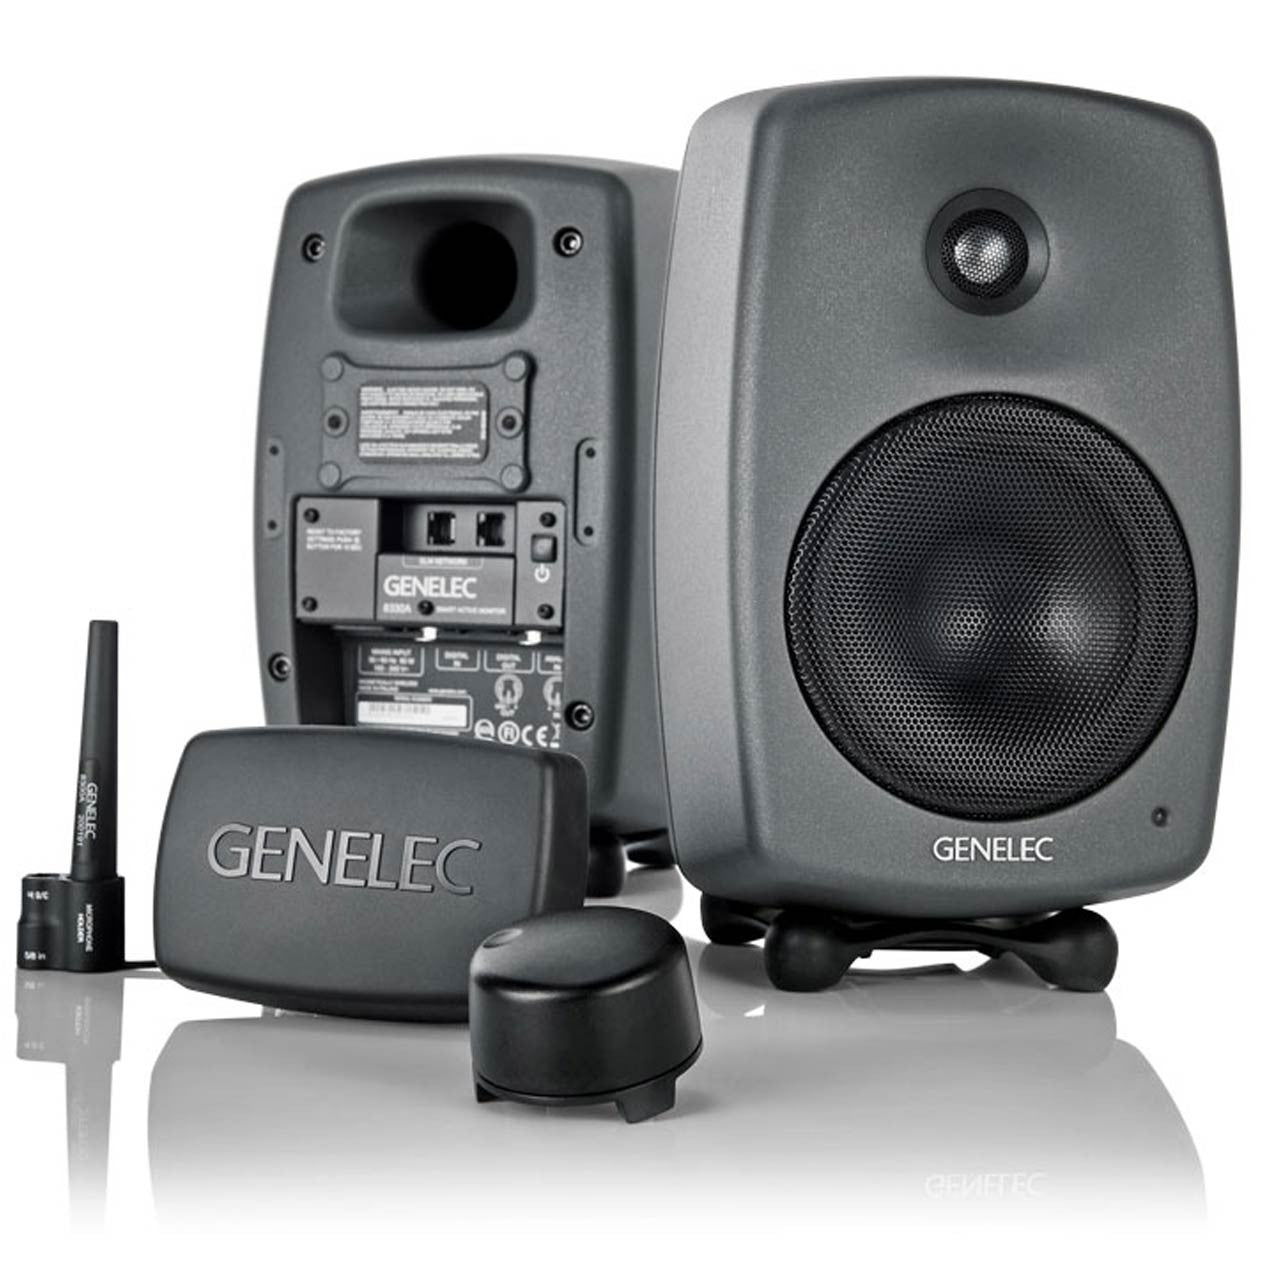 Genelec 8320A SAM Monitors With GLM 3.0 Software Bundle and Volume Control